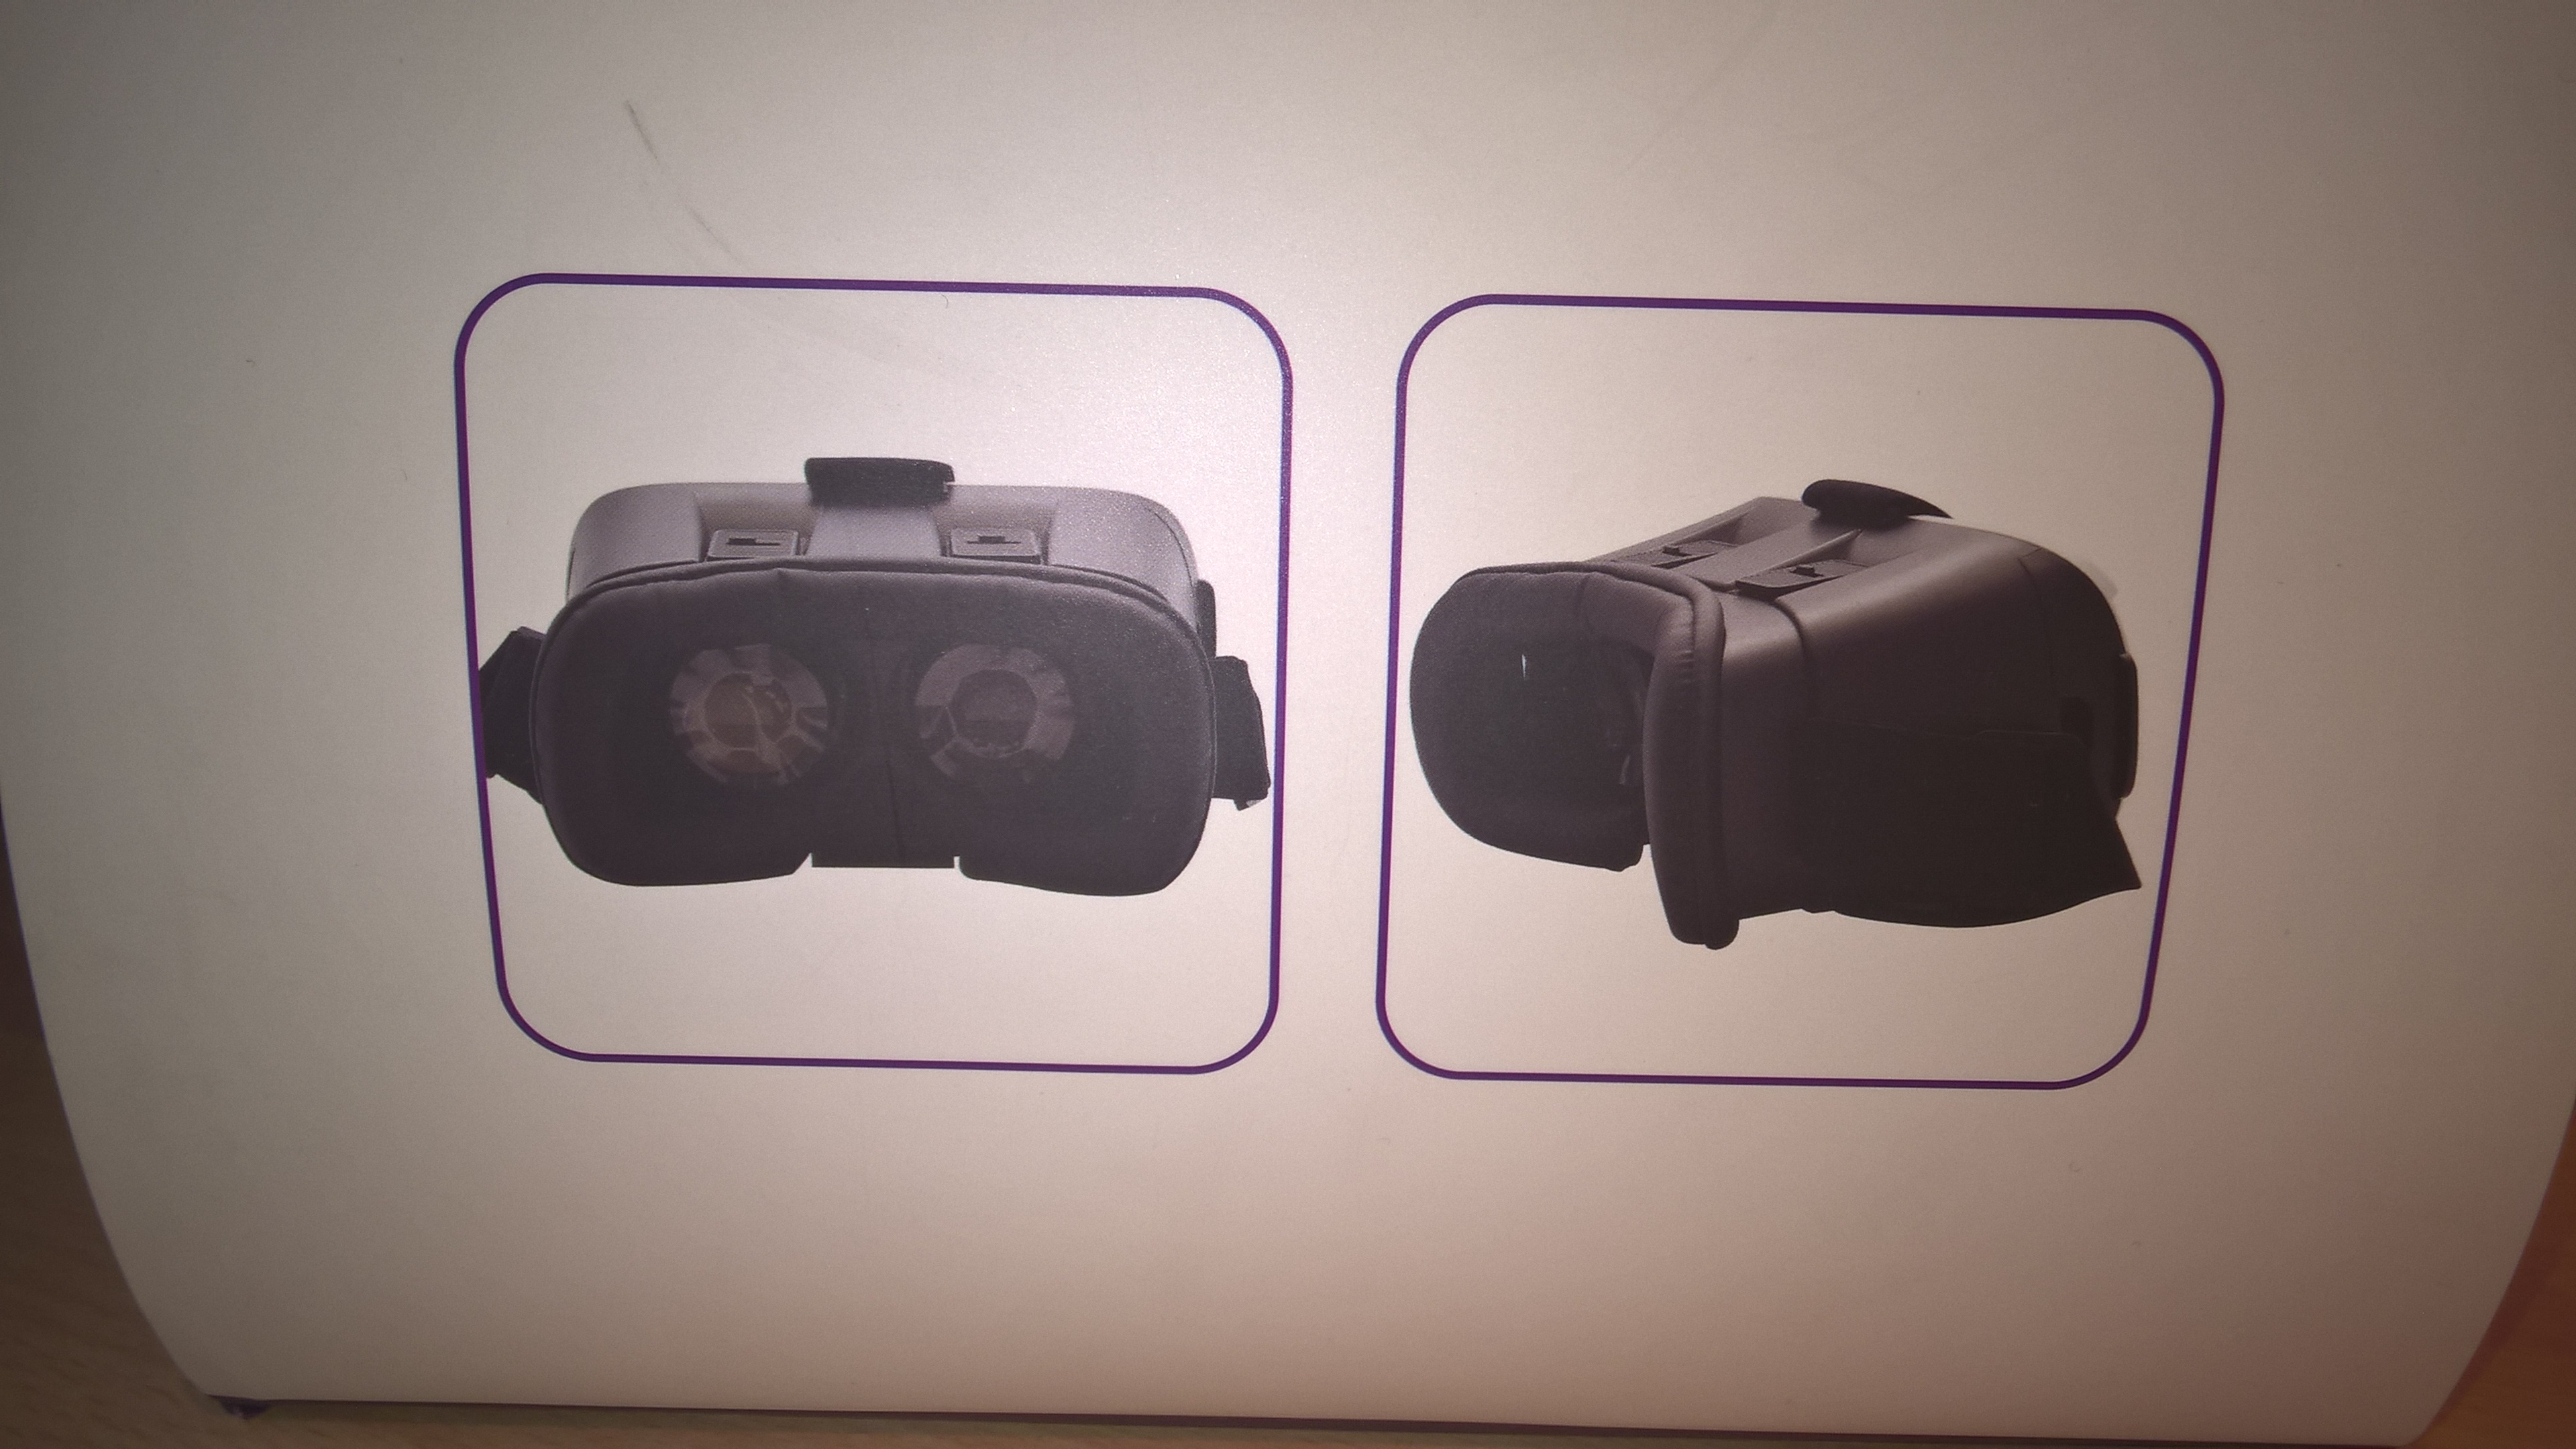 816dd981950c The iCandy 3D Virtual Reality Goggles Plus unboxing and review ...